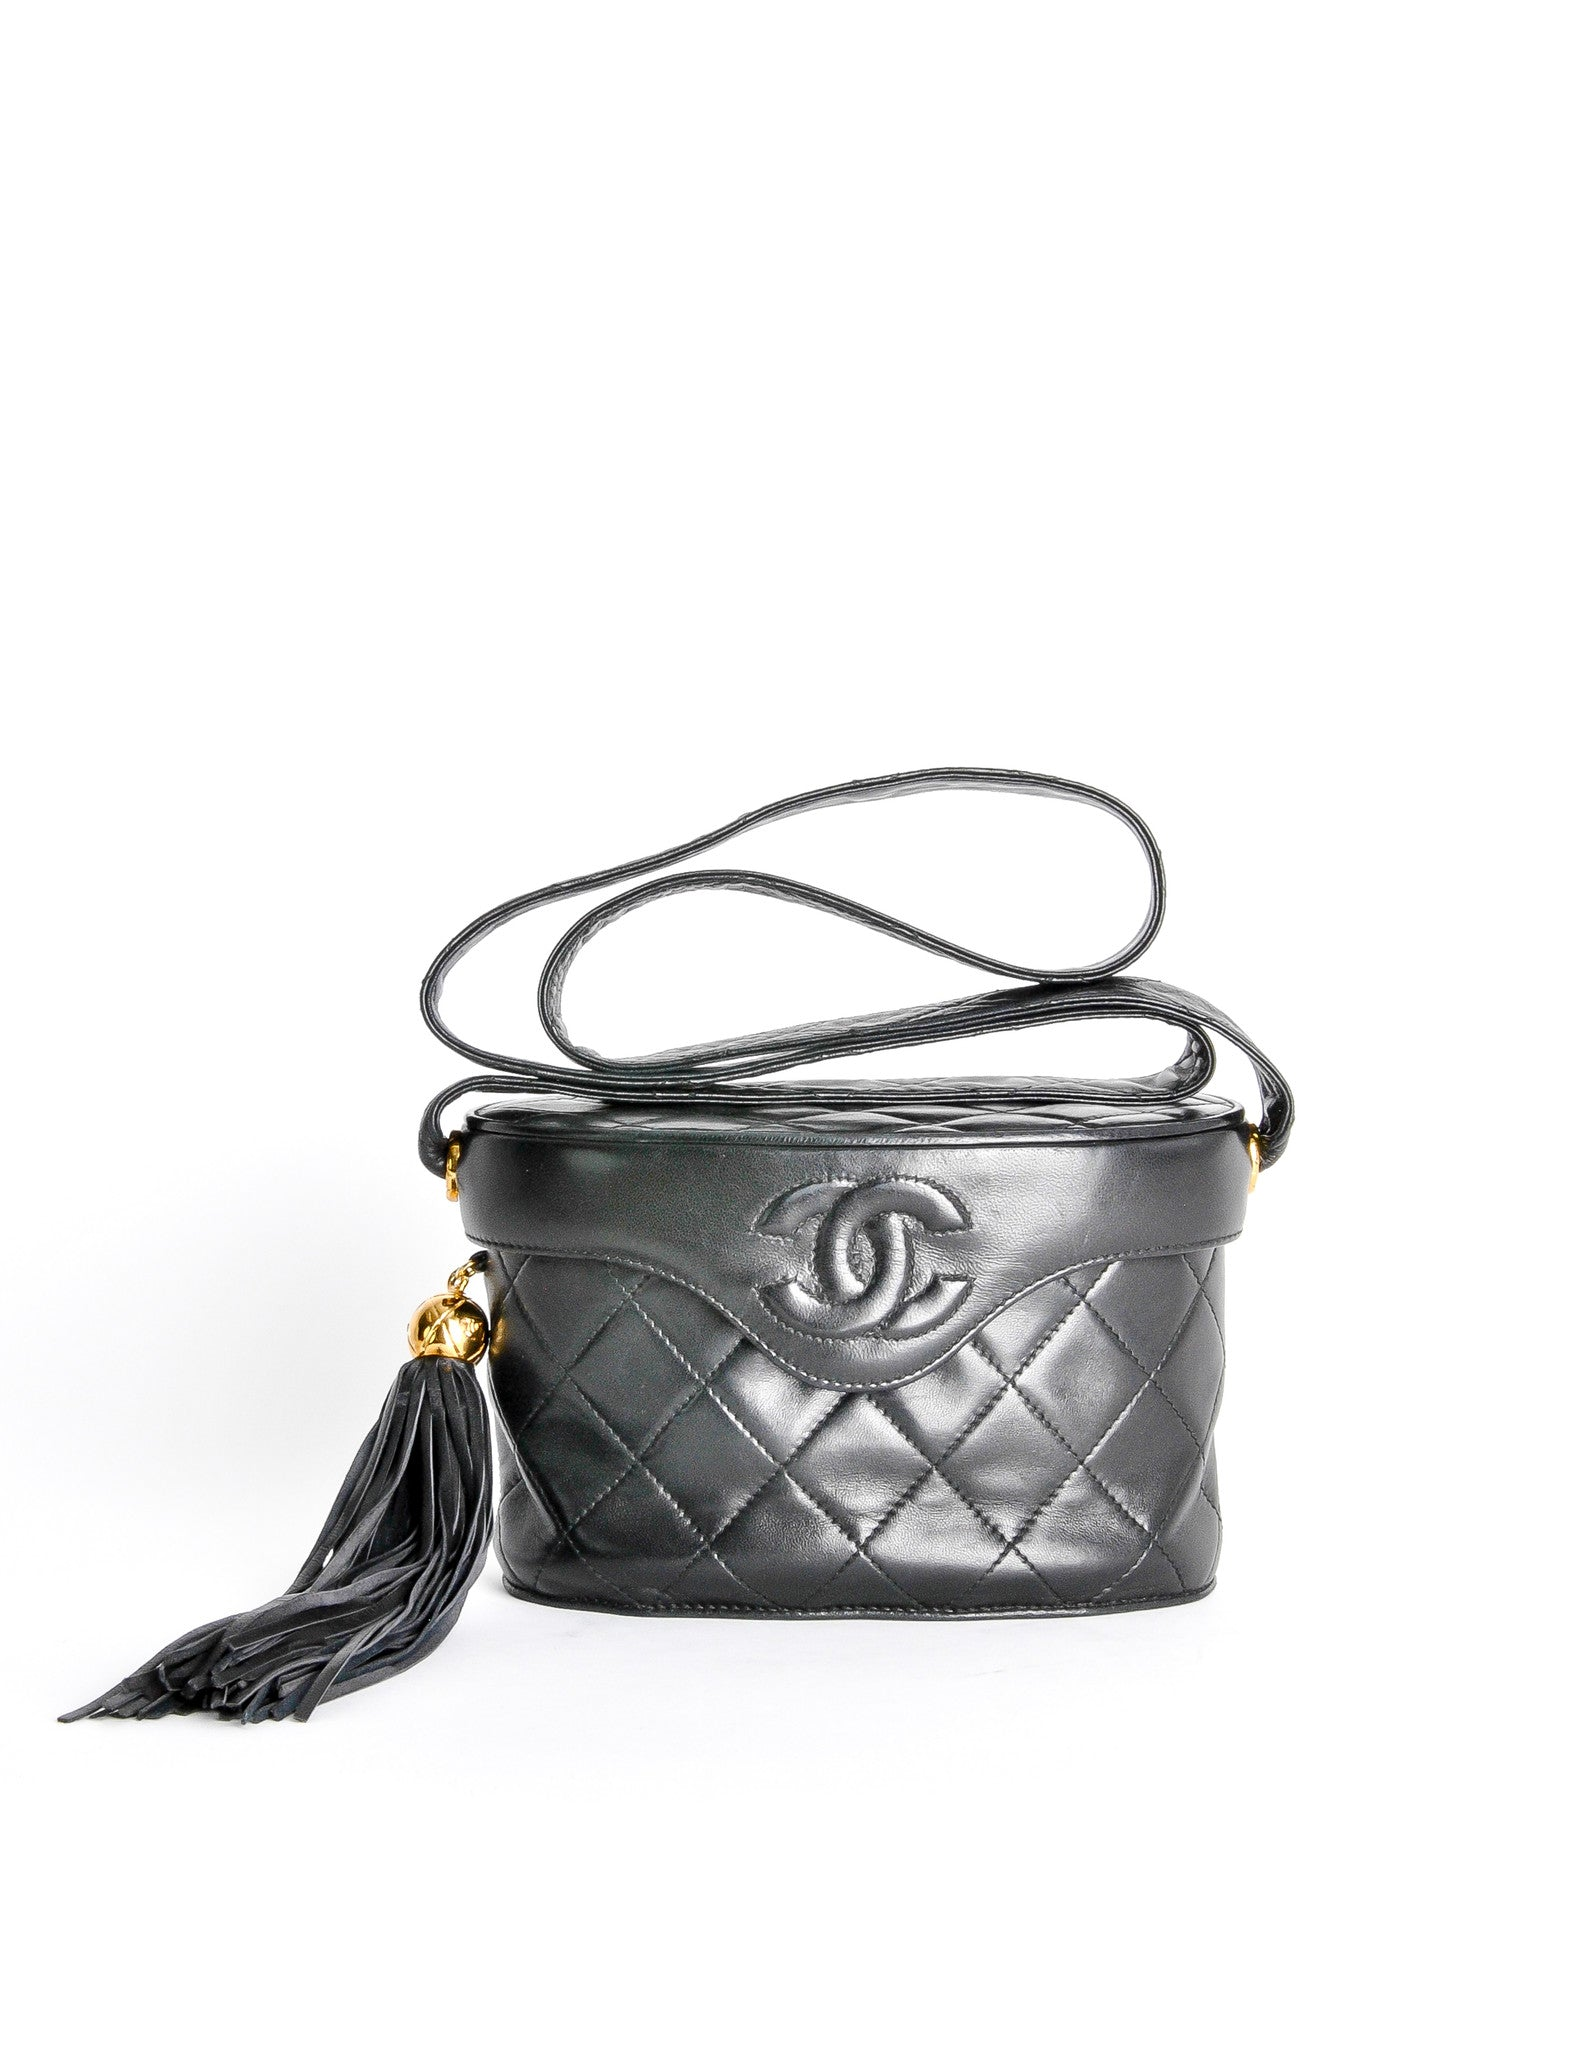 Chanel Vintage Black Quilted Lambskin Tassel Bag - Amarcord Vintage Fashion  - 1